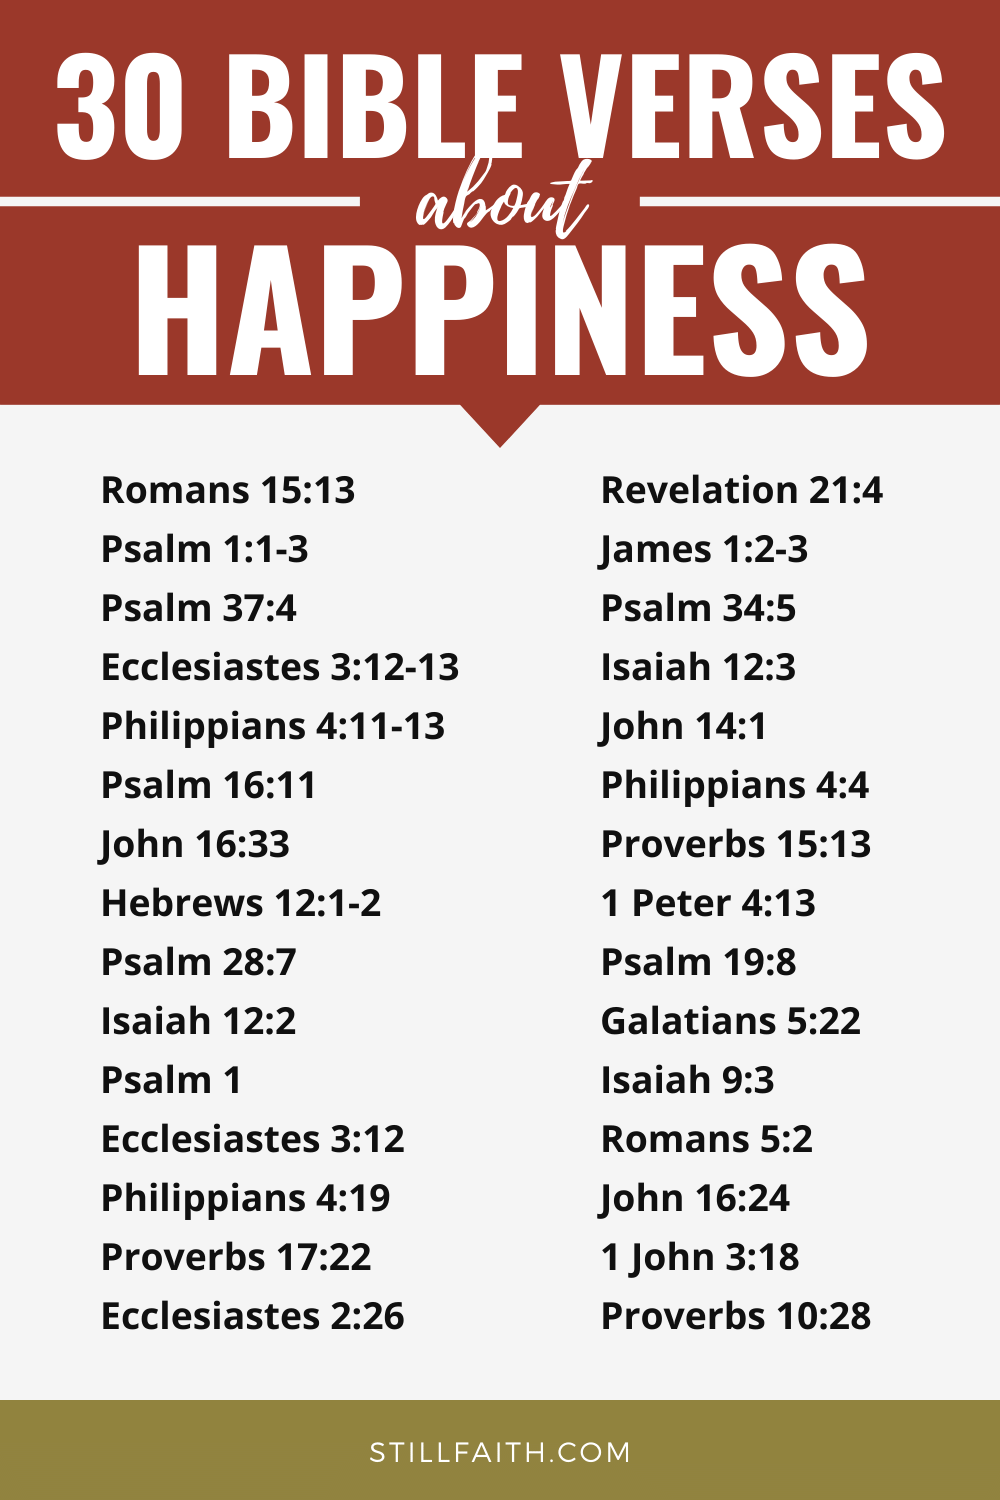 163 Bible Verses about Happiness